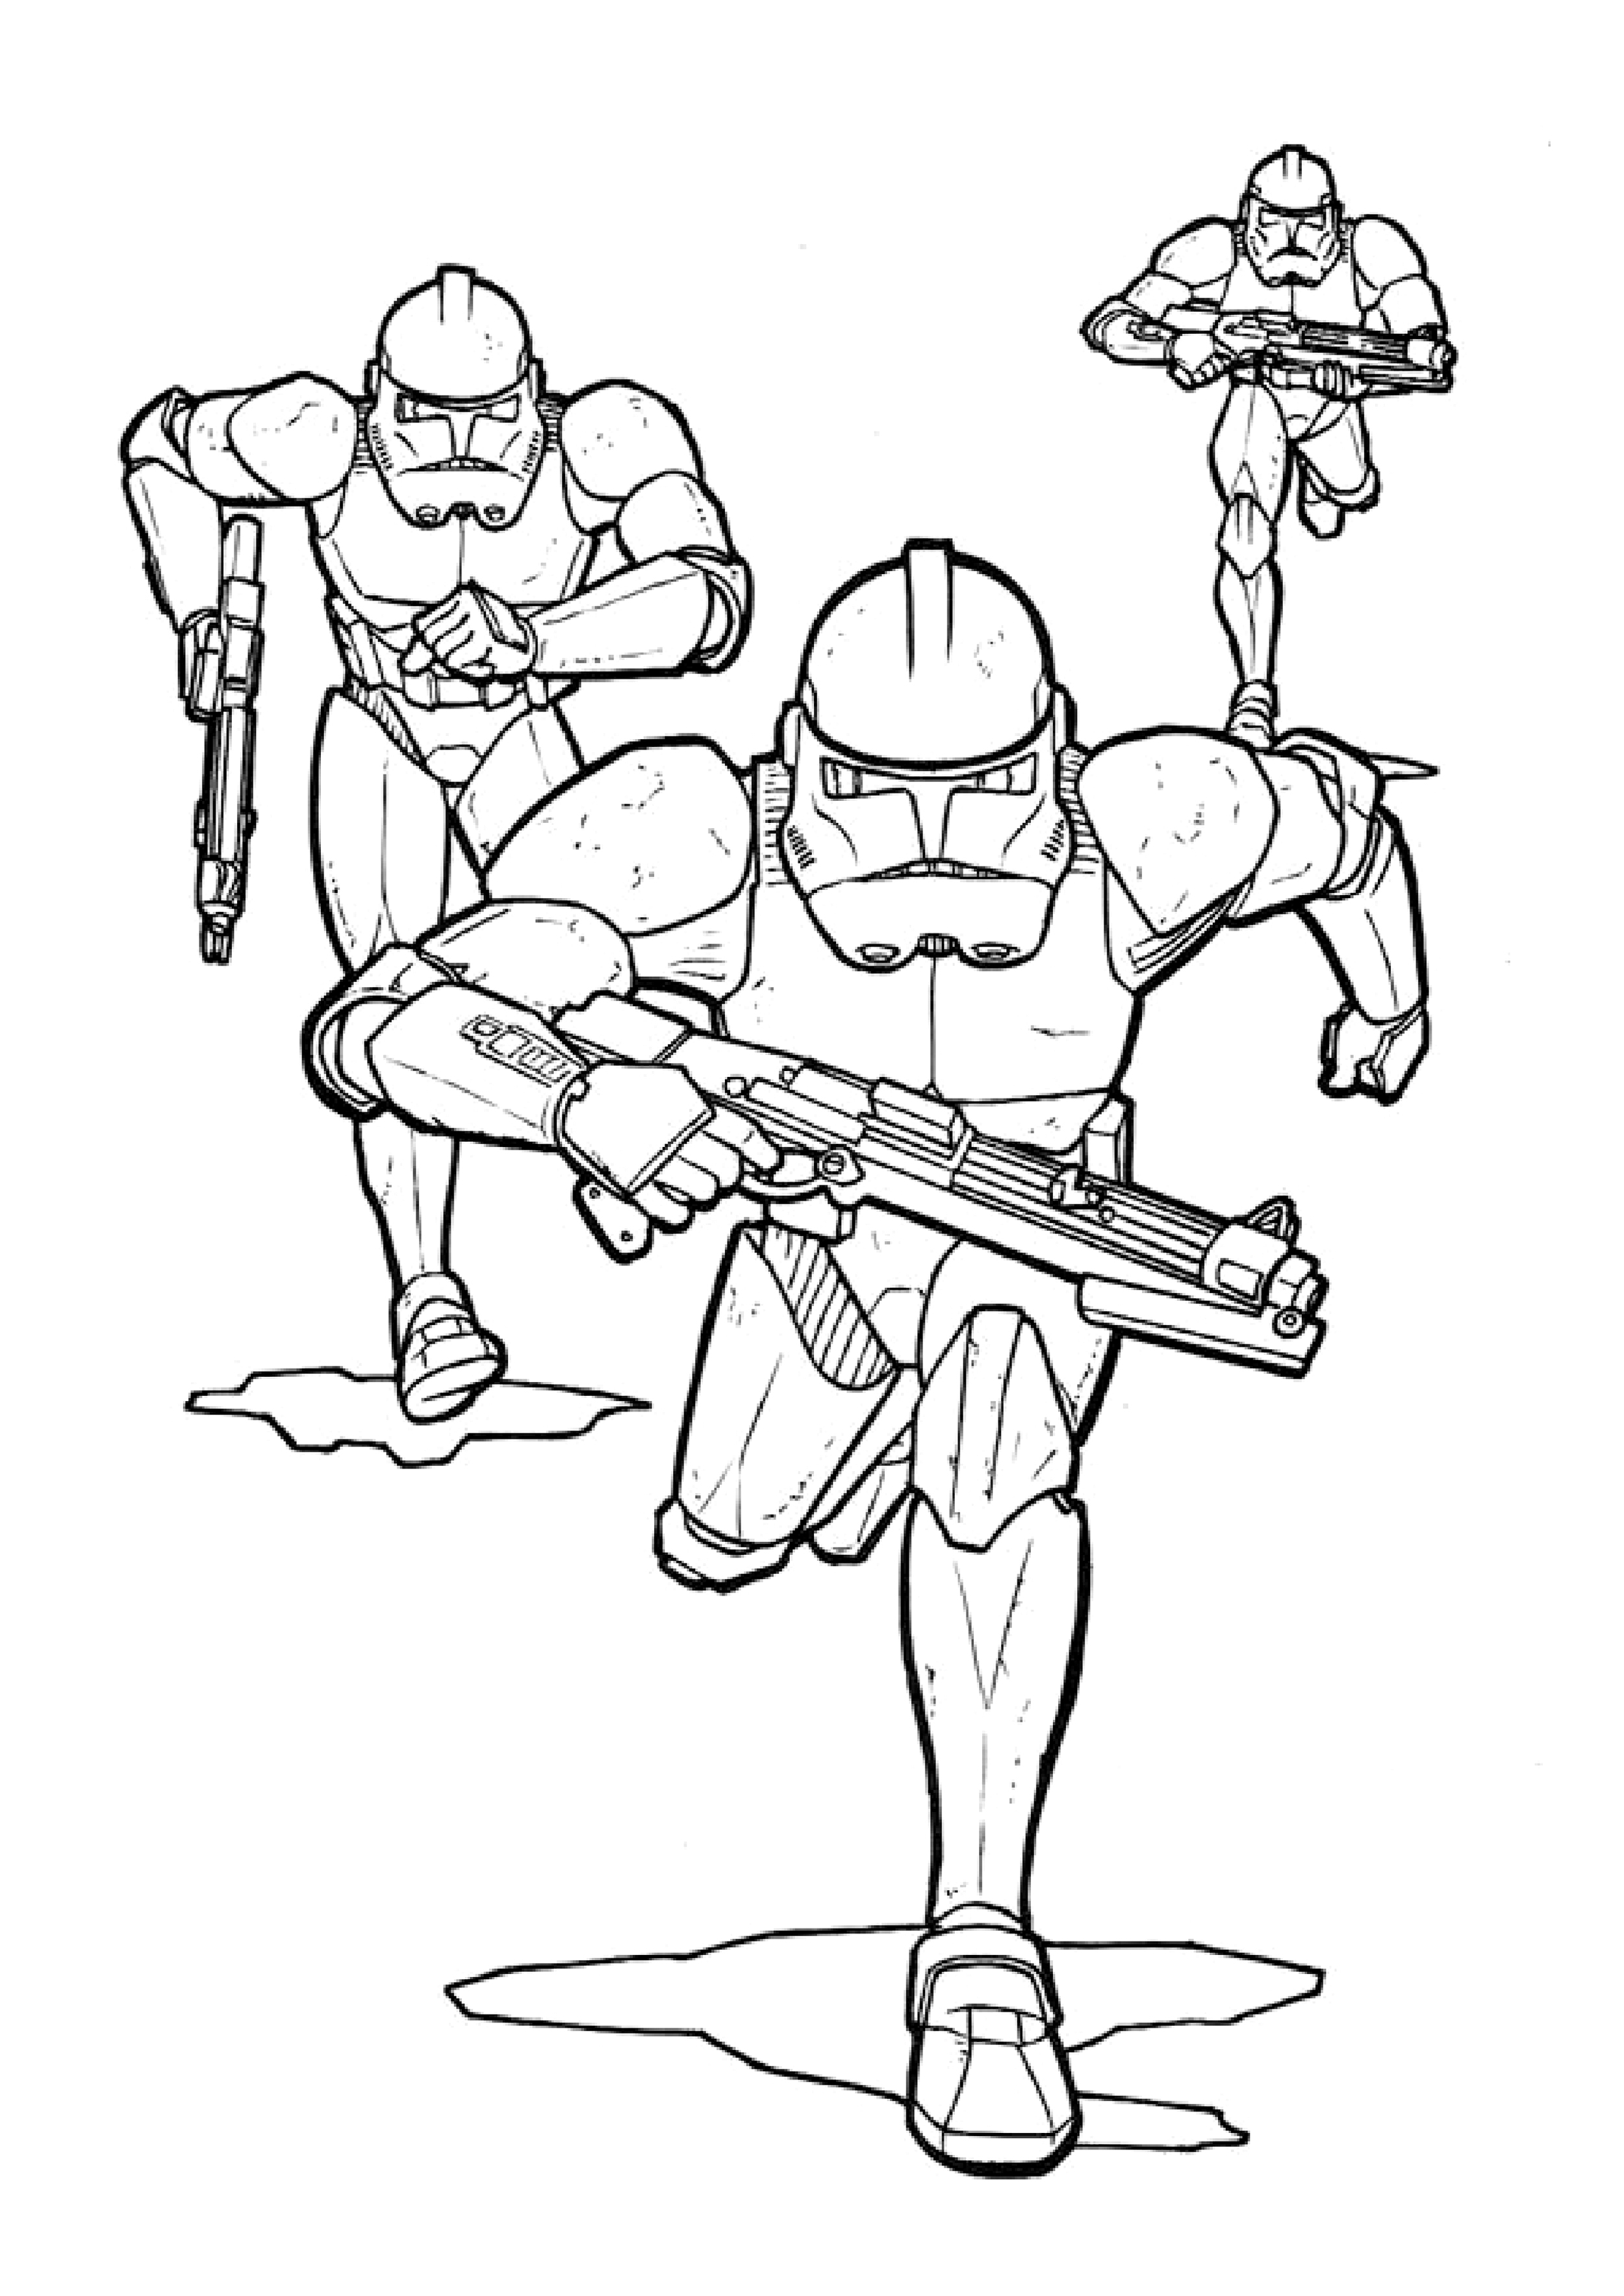 star wars free coloring pages star wars free to color for children star wars kids wars pages coloring star free